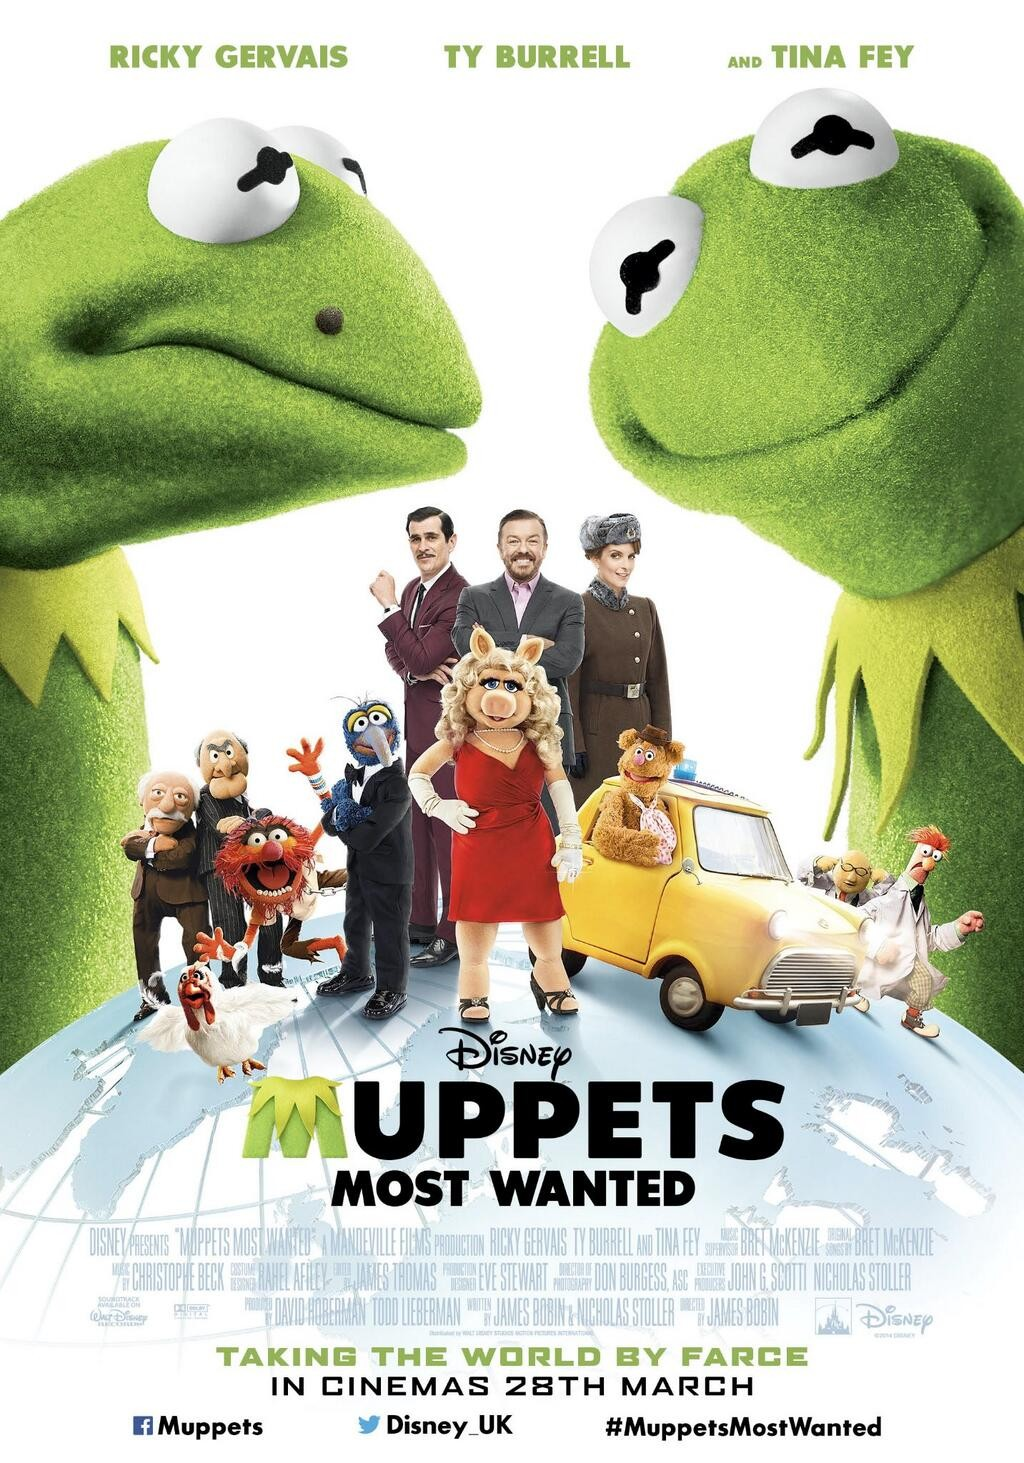 Muppets Most Wanted-Official Poster Banner PROMO POSTER-23JANEIRO2014